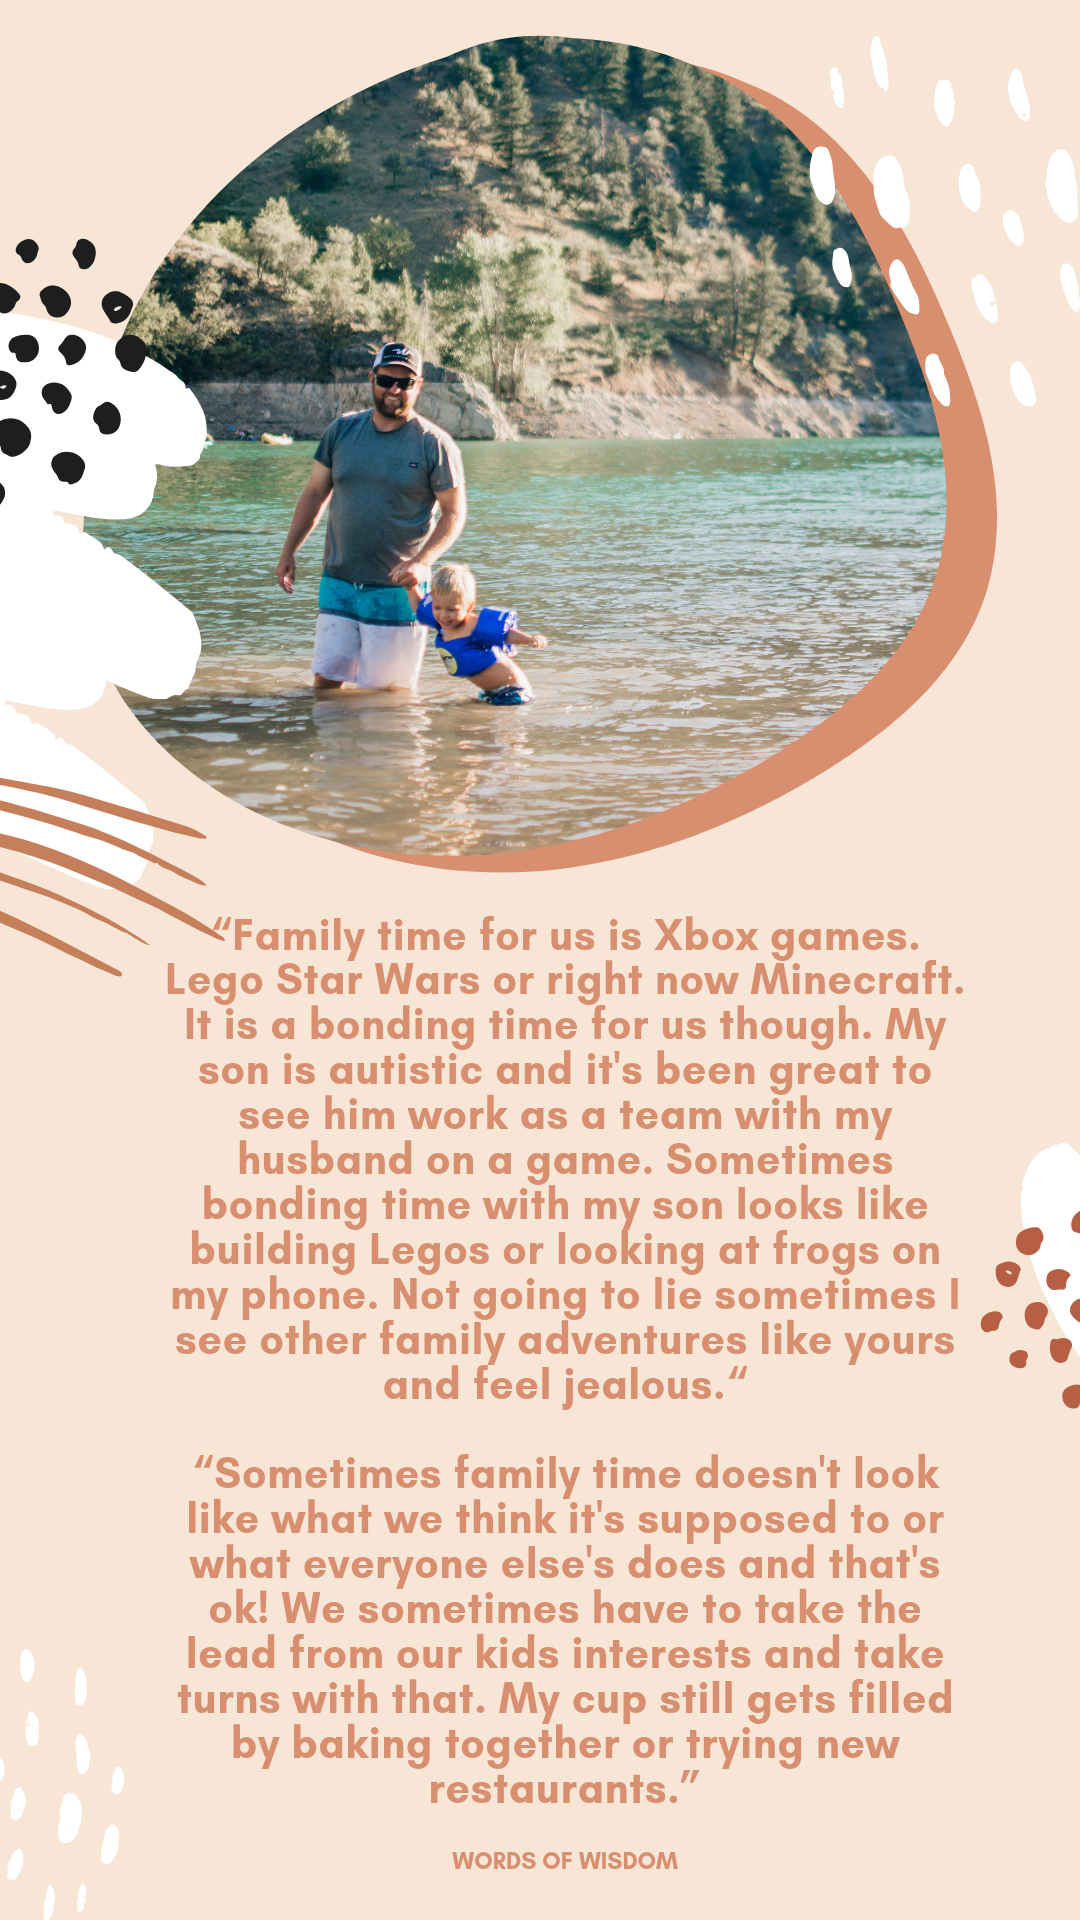 """""""Family time for us is Xbox games. Lego Star Wars or right now Minecraft. It is a bonding time for us though. My son is autistic and it's been great to see him work as a team with my husband on a game. Sometimes bonding time with my son looks like building Legos or looking at frogs on my phone. Not going to lie sometimes I see other family adventures like yours and feel jealous.""""  """"Sometimes family time doesn't look like what we think it's supposed to or what everyone else's does and that's ok! We sometimes have to take the lead from our kids interests and take turns with that. My cup still gets filled by baking together or trying new restaurants.�"""